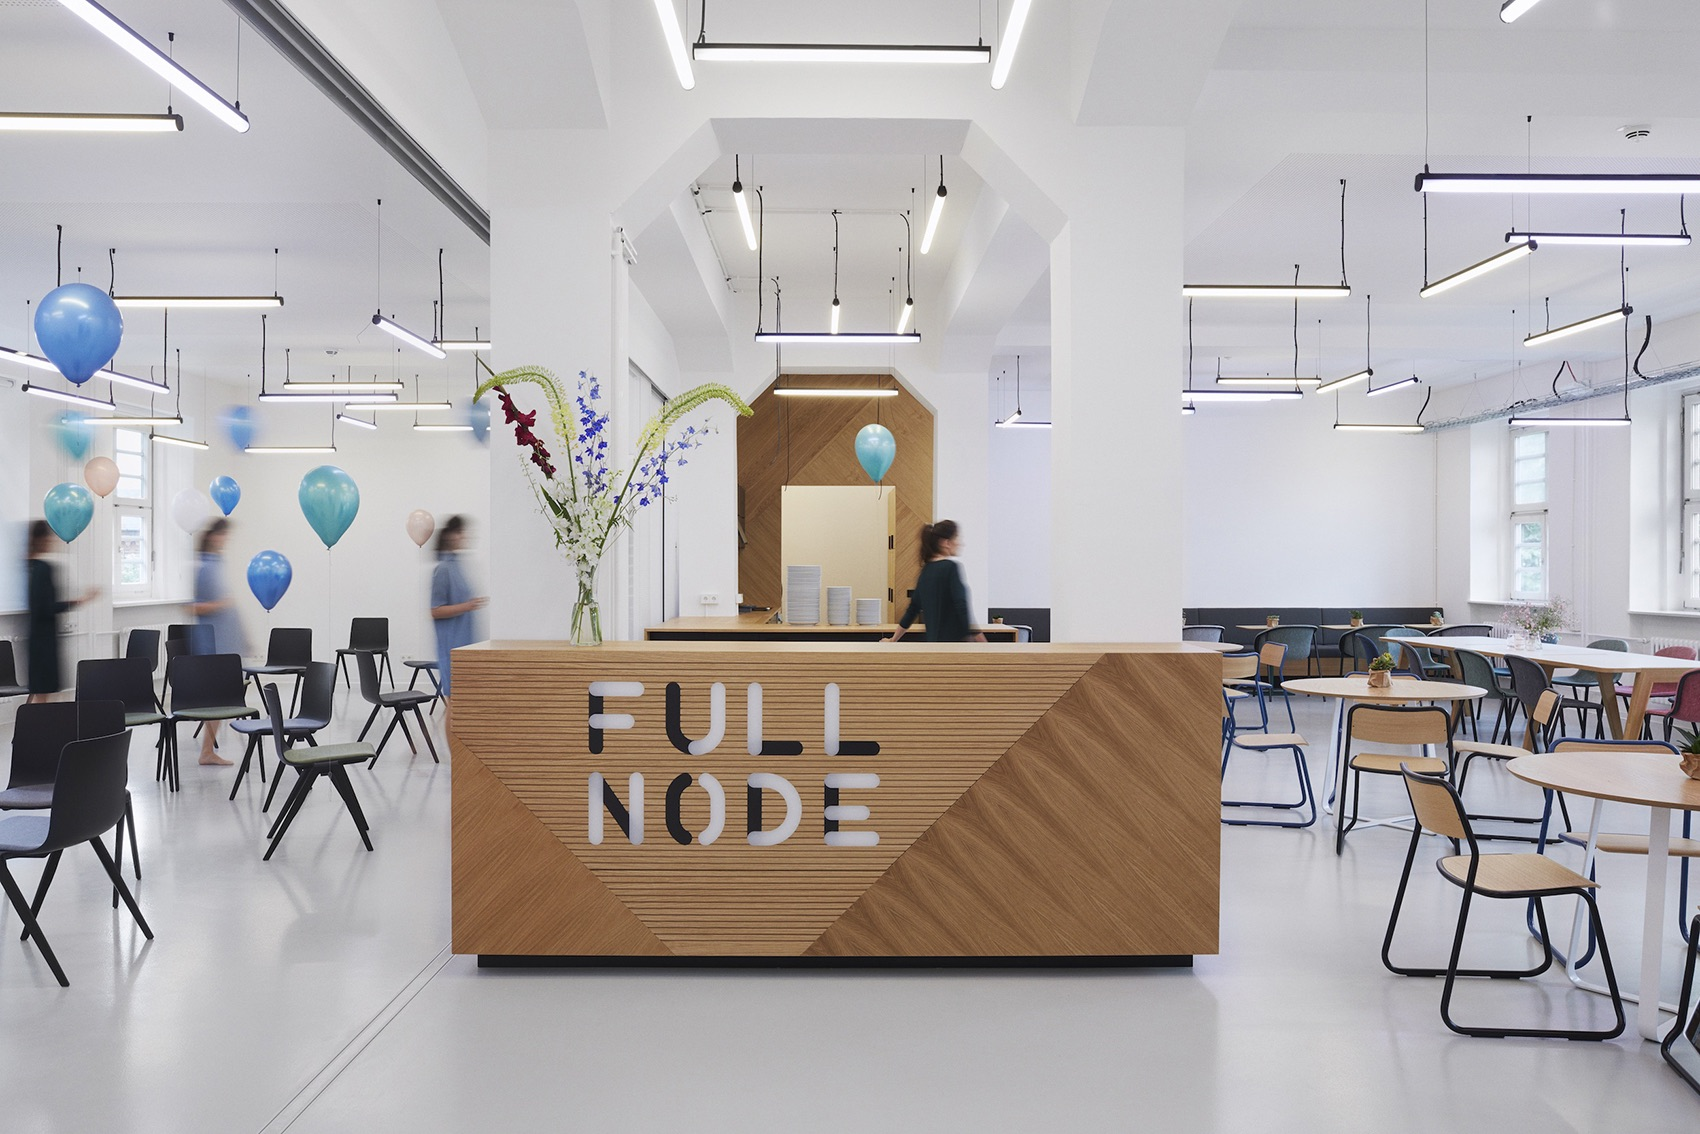 A Tour of Full Node's Cool New Berlin Coworking Space